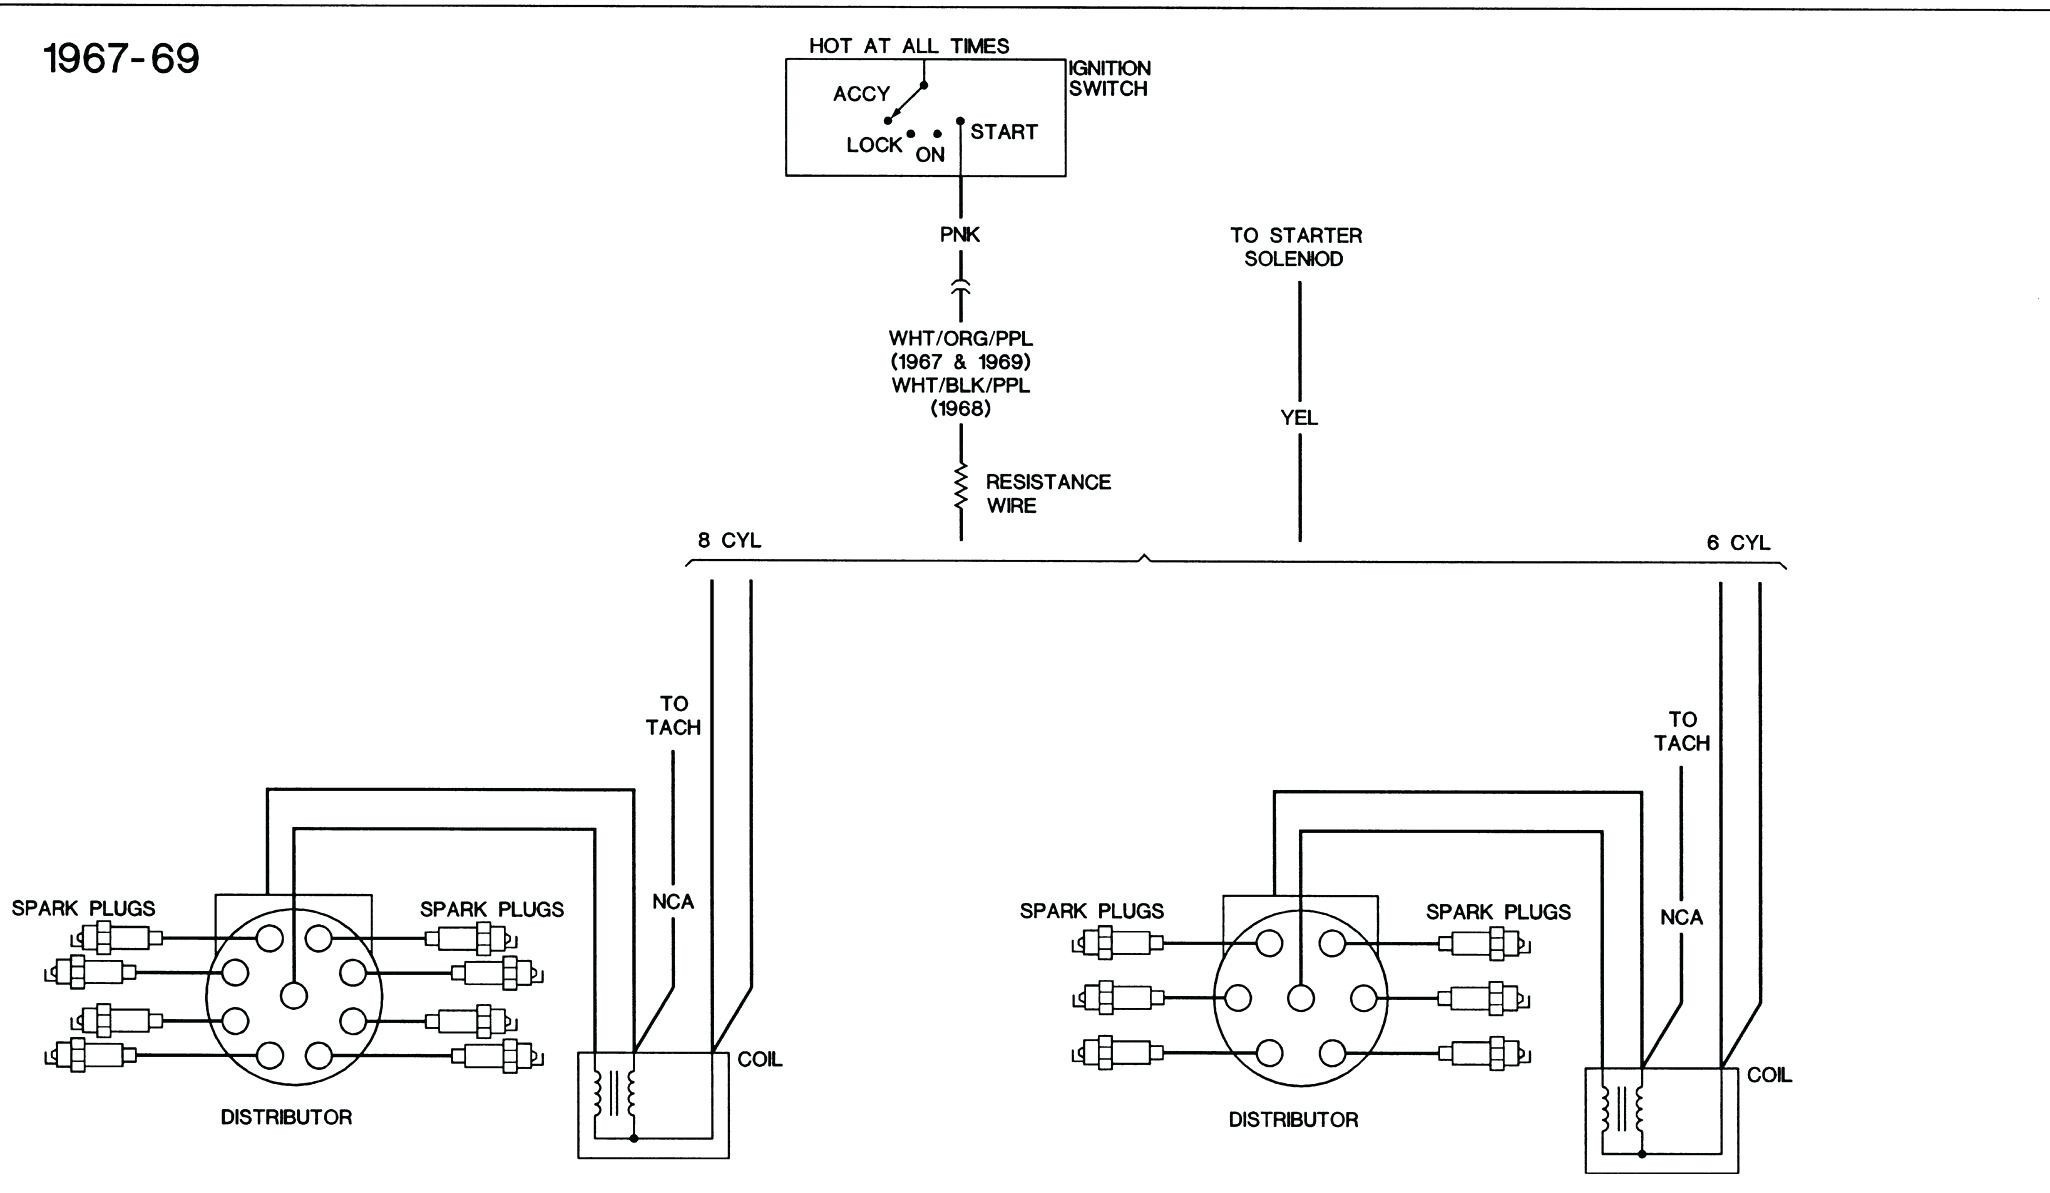 WRG-2199] 703 Remote Control Wiring Diagram on